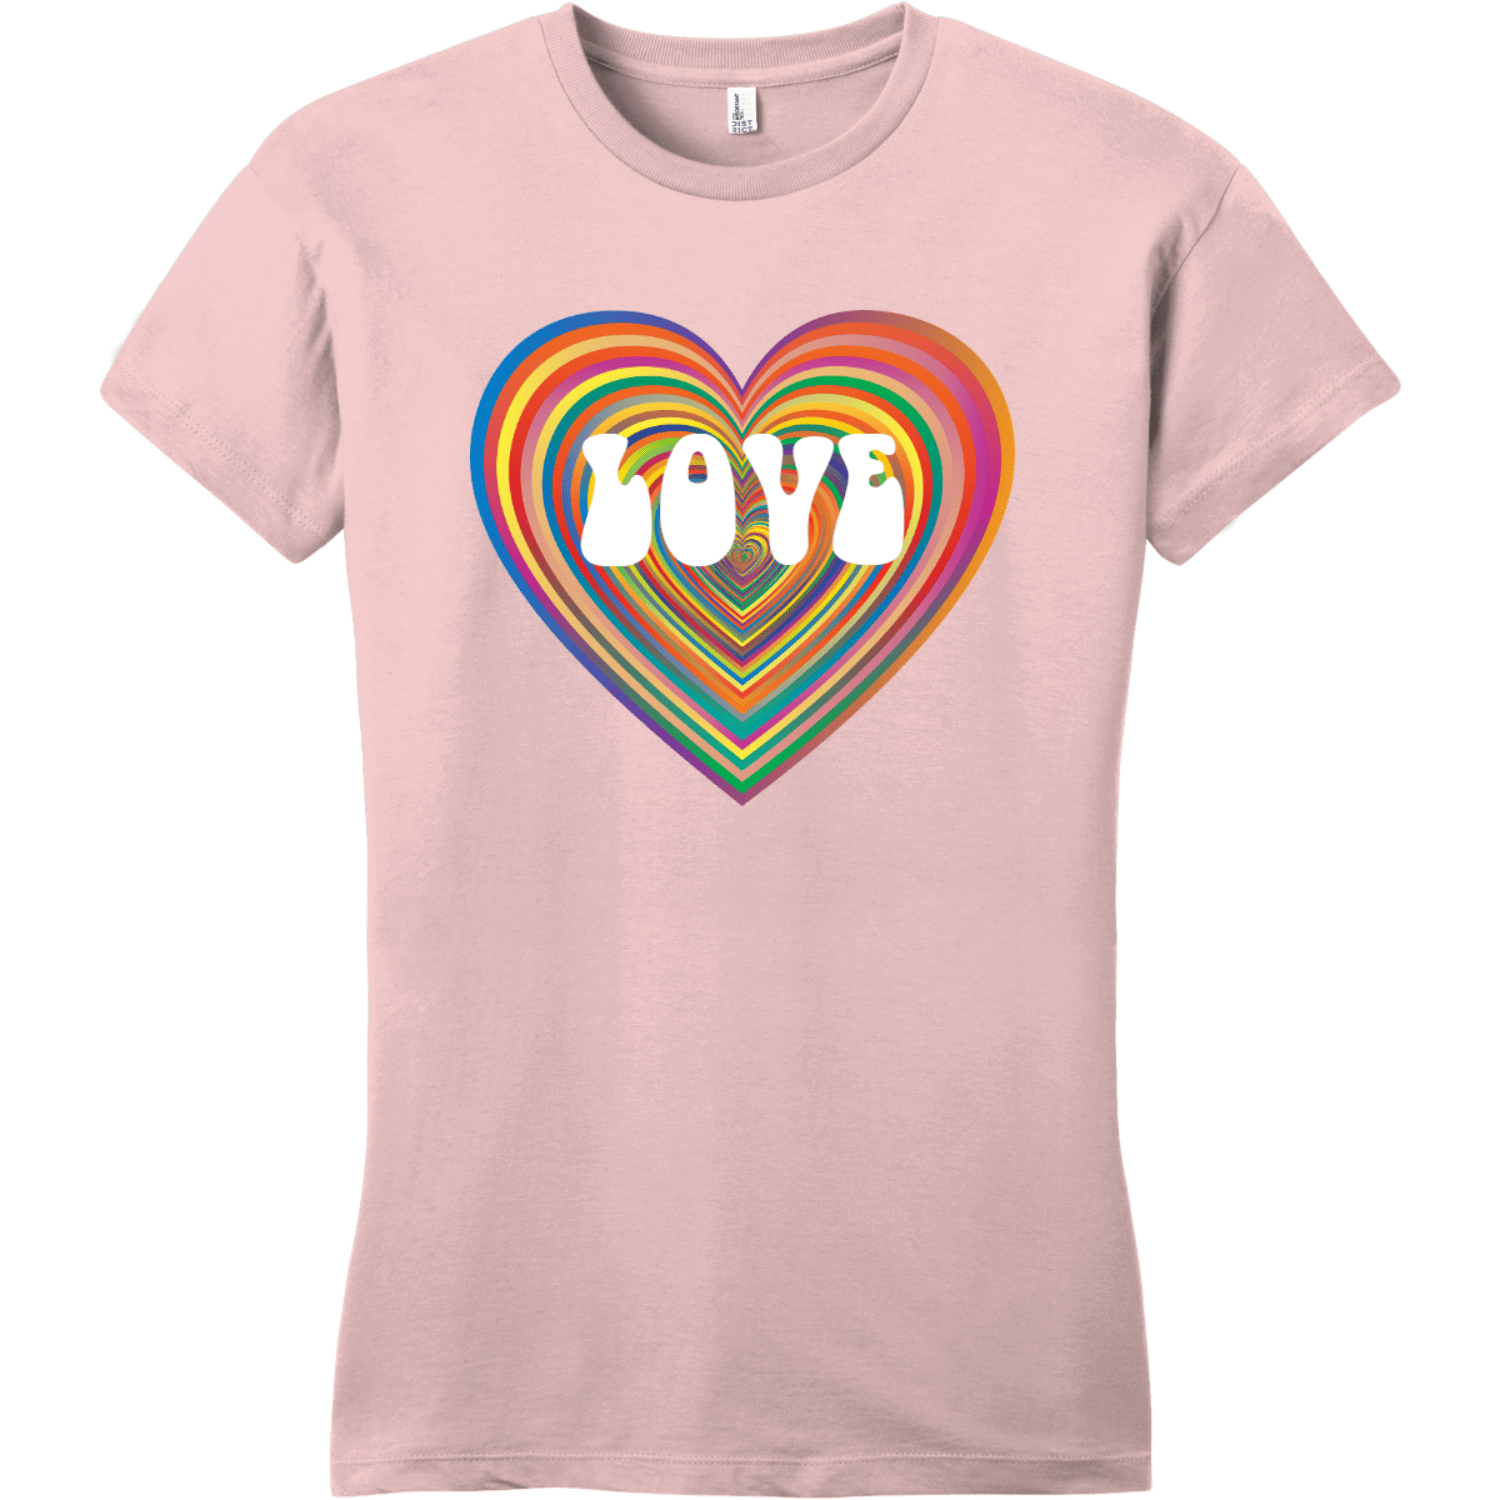 Love Psychedelic Heart T Shirt Dusty Lavender District Women's Very Important Tee DT6002